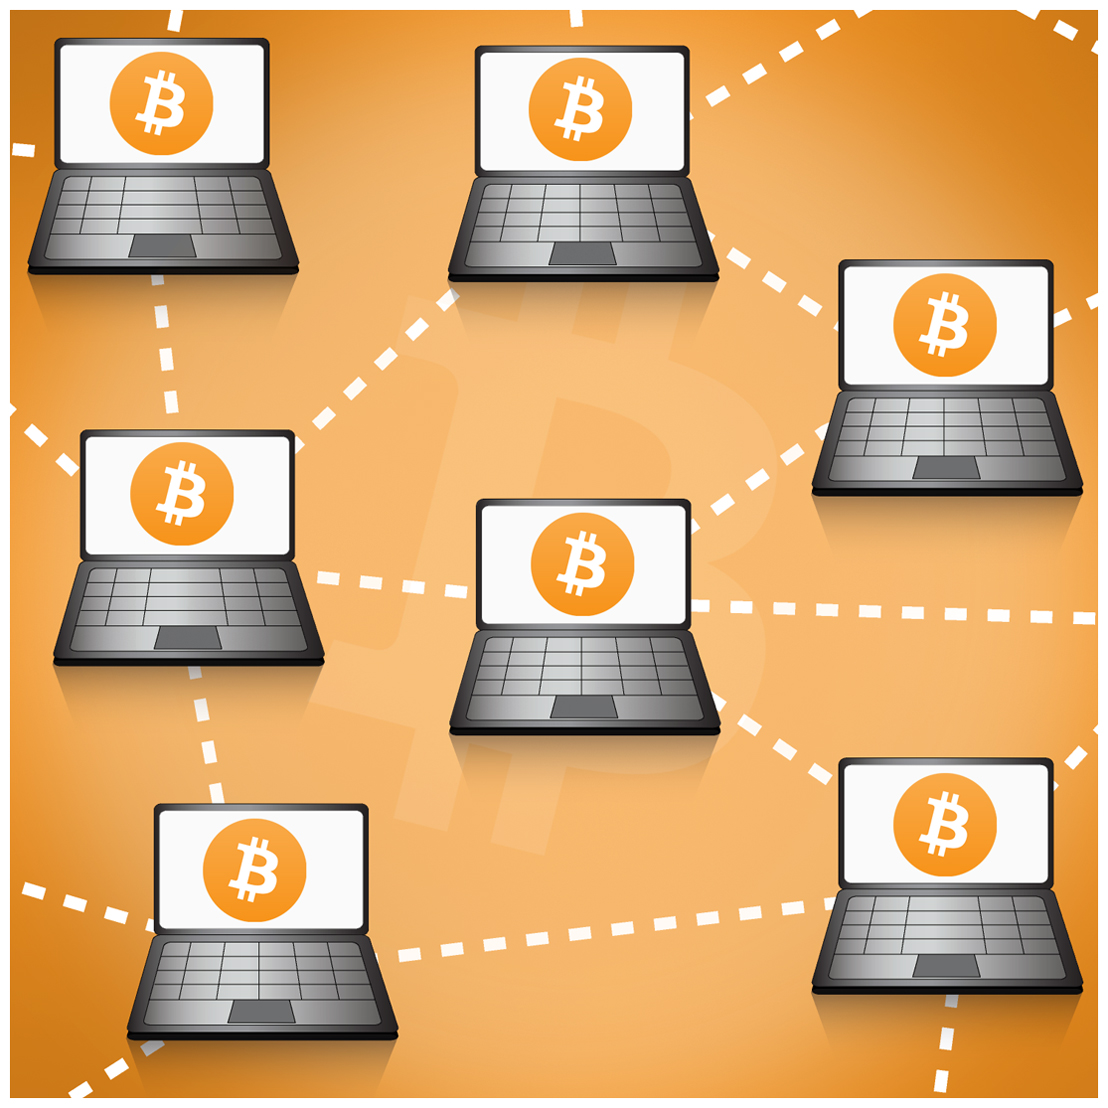 How bitcoin is peer to peer? - Bitcoin Stack Exchange